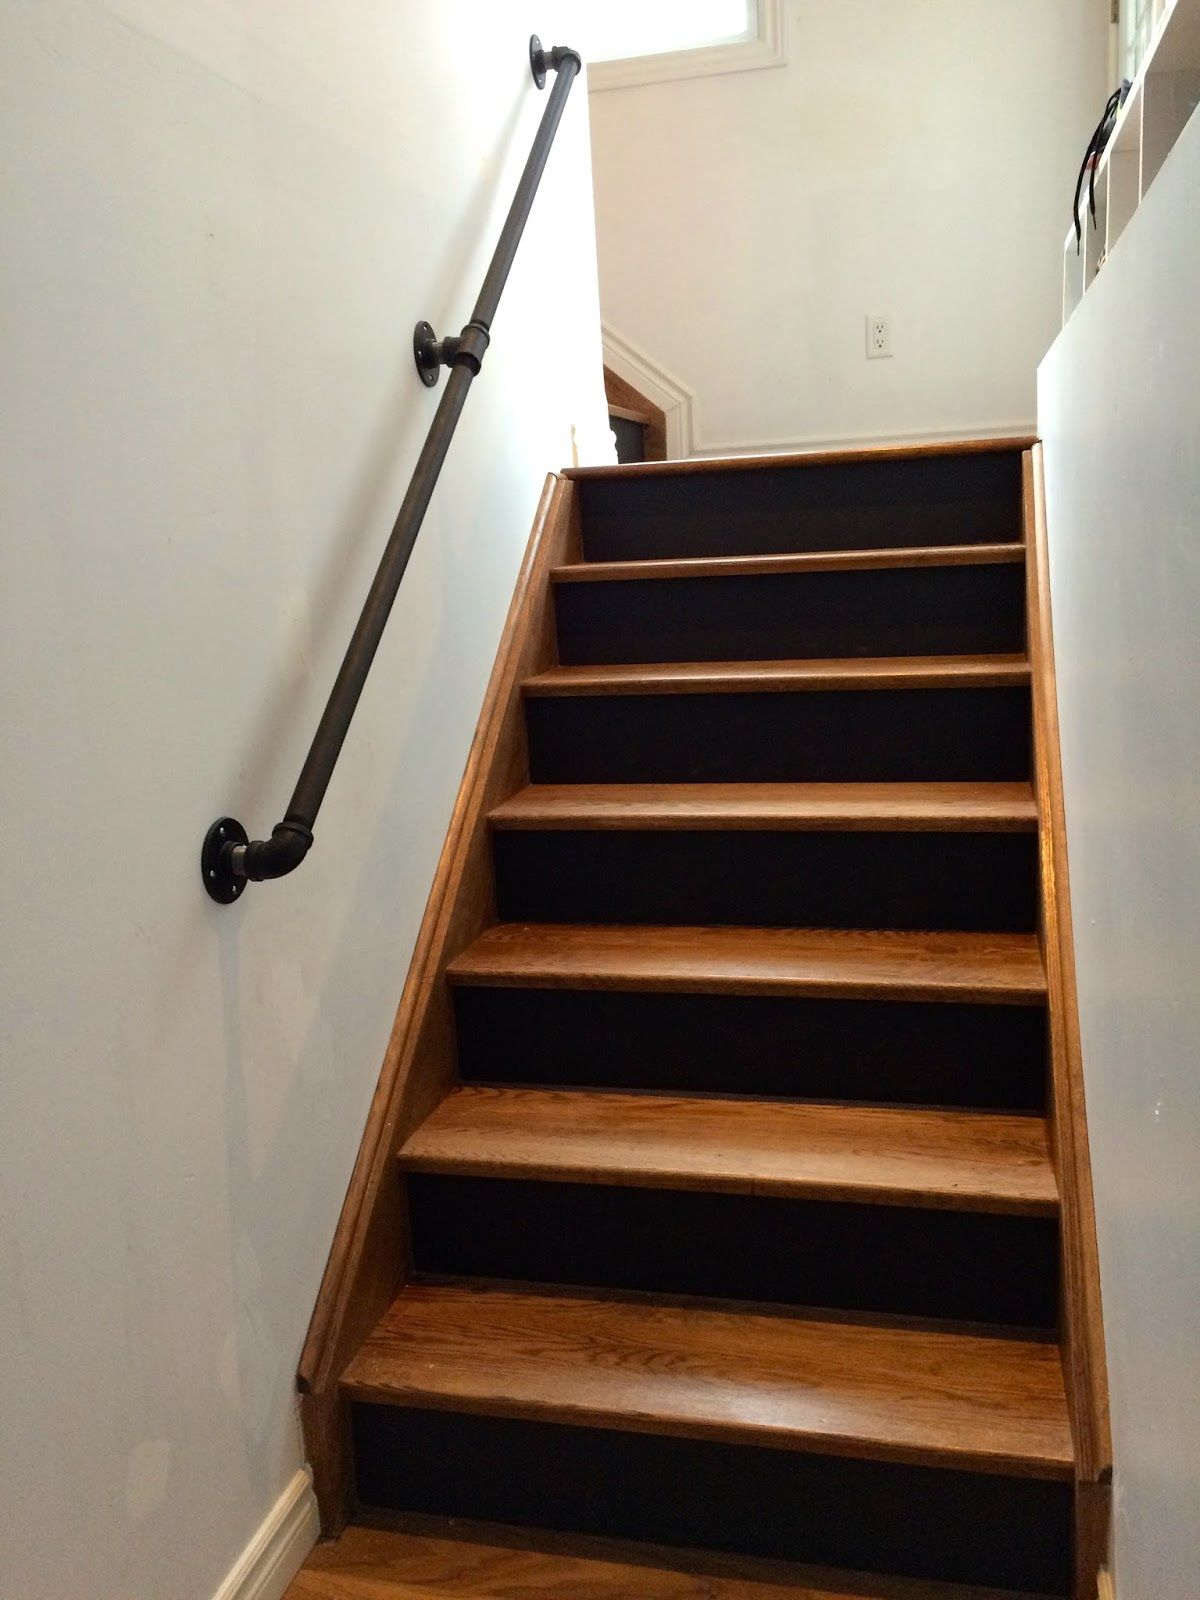 Escalera Hogar Gas Pipe Railing Walnut Stairs Black Risers